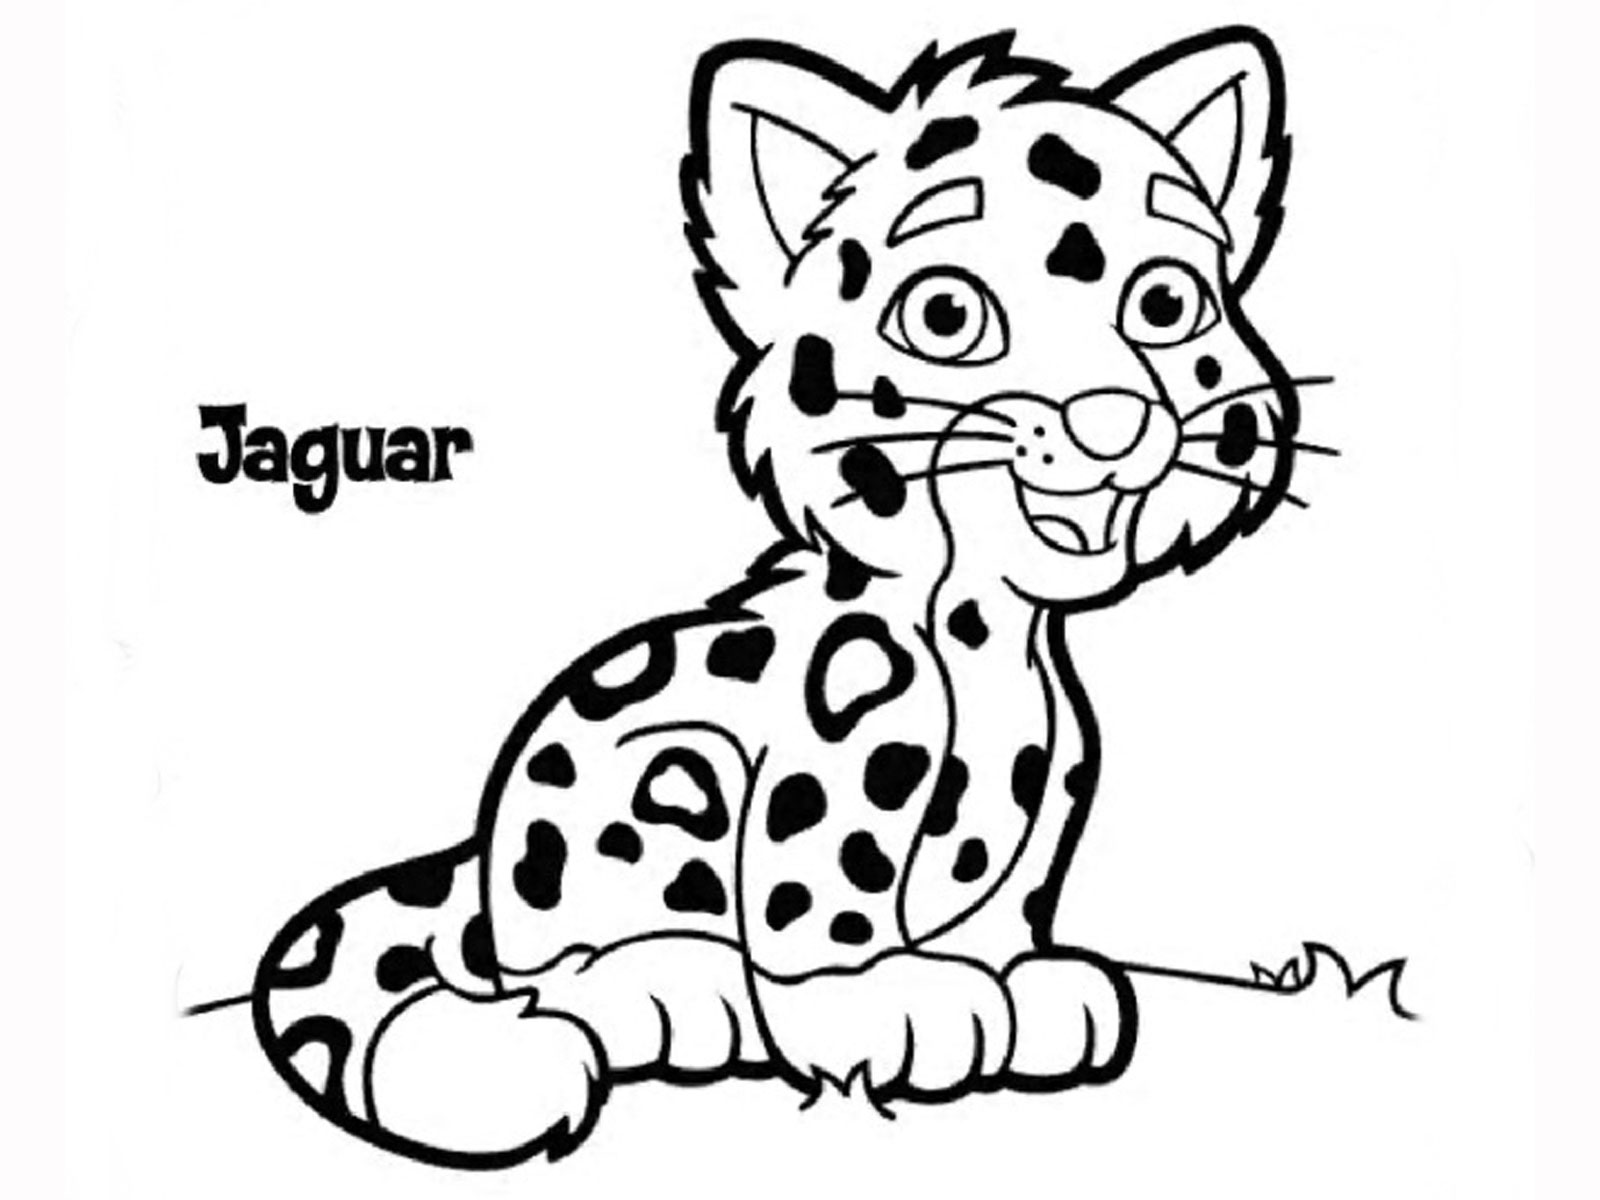 coloring pages jaguars - photo#1